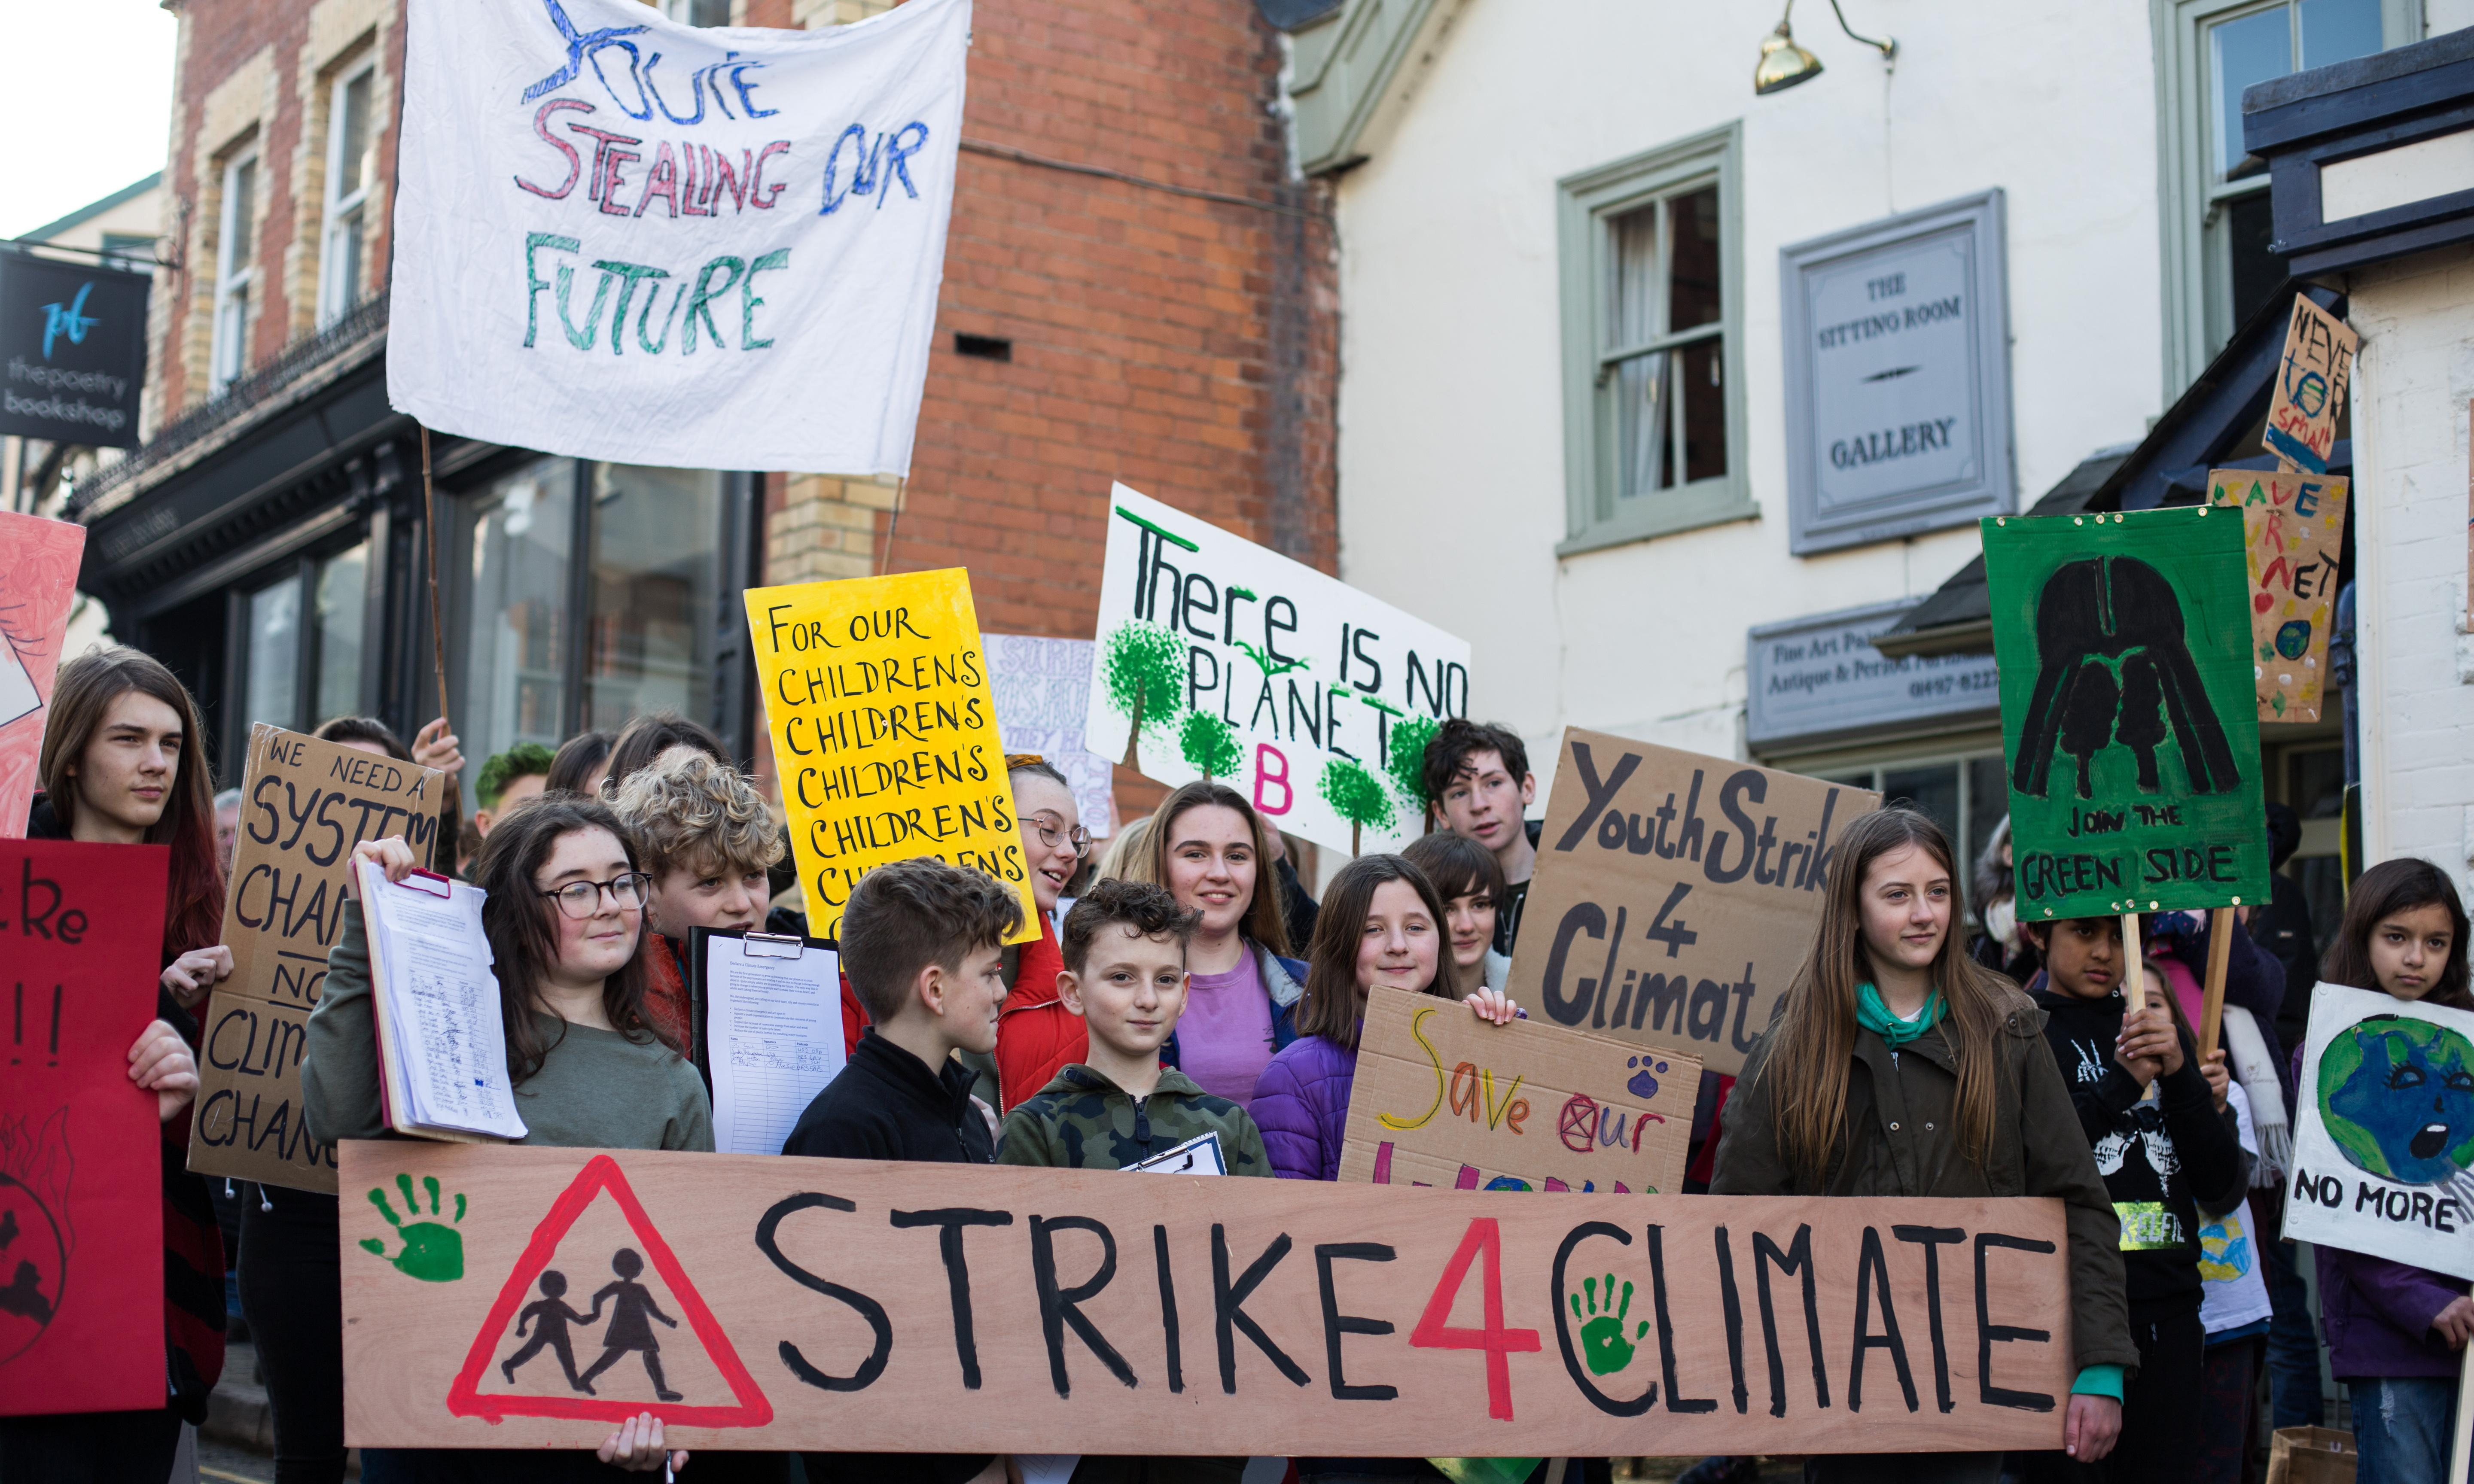 Teachers to join climate protests to demand curriculum reform